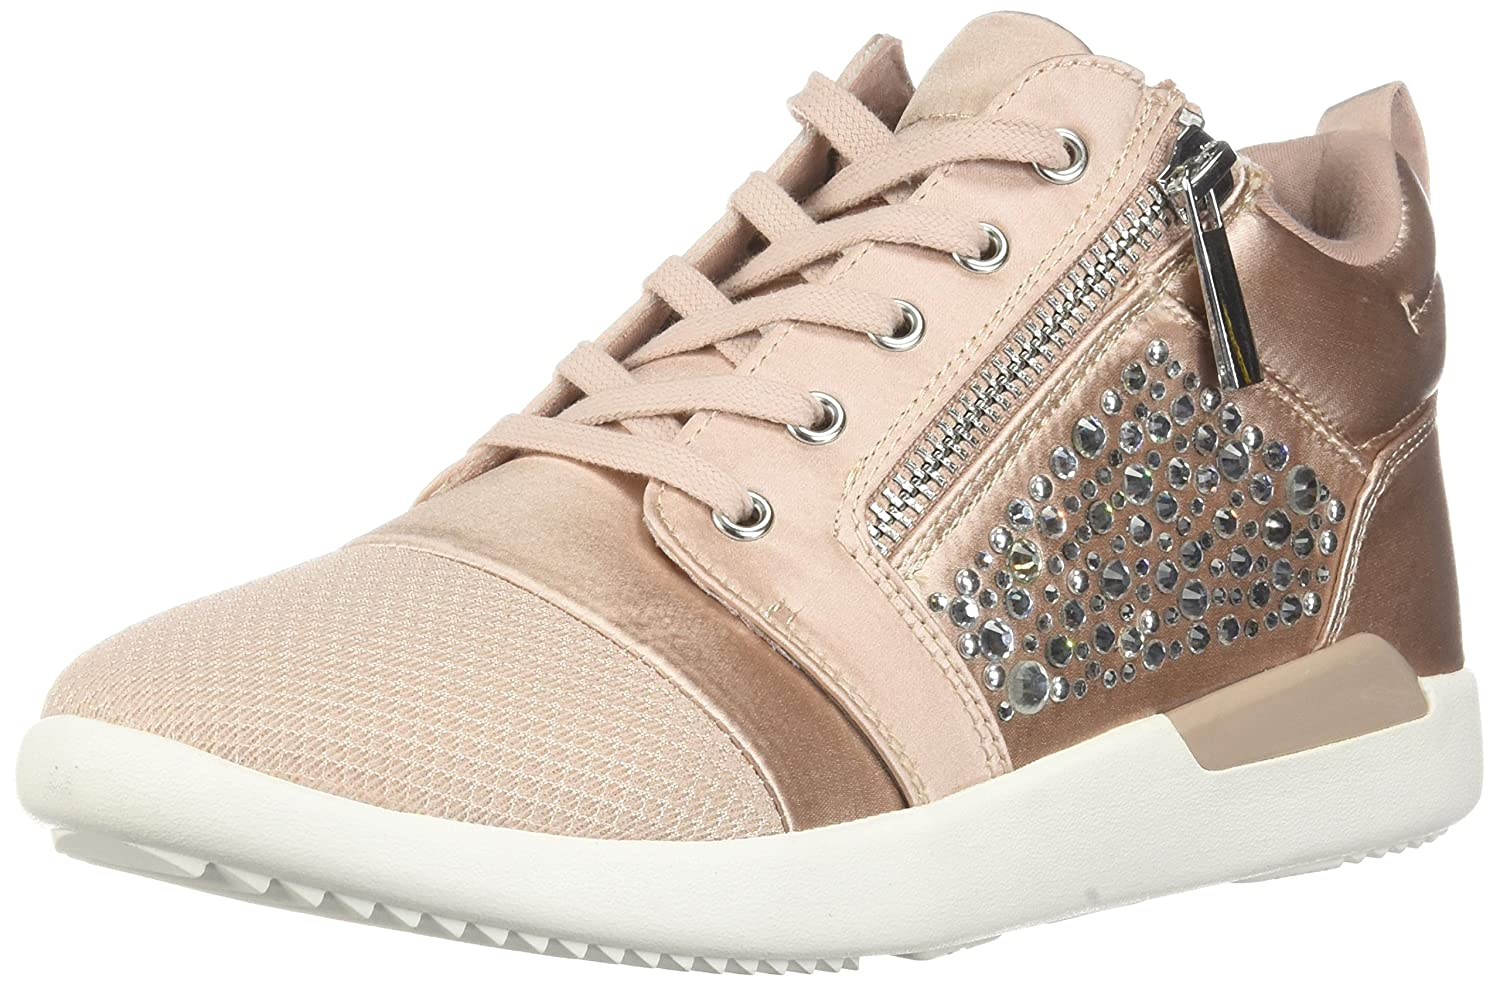 Light Pink Aldo Women's Naven Sneakers